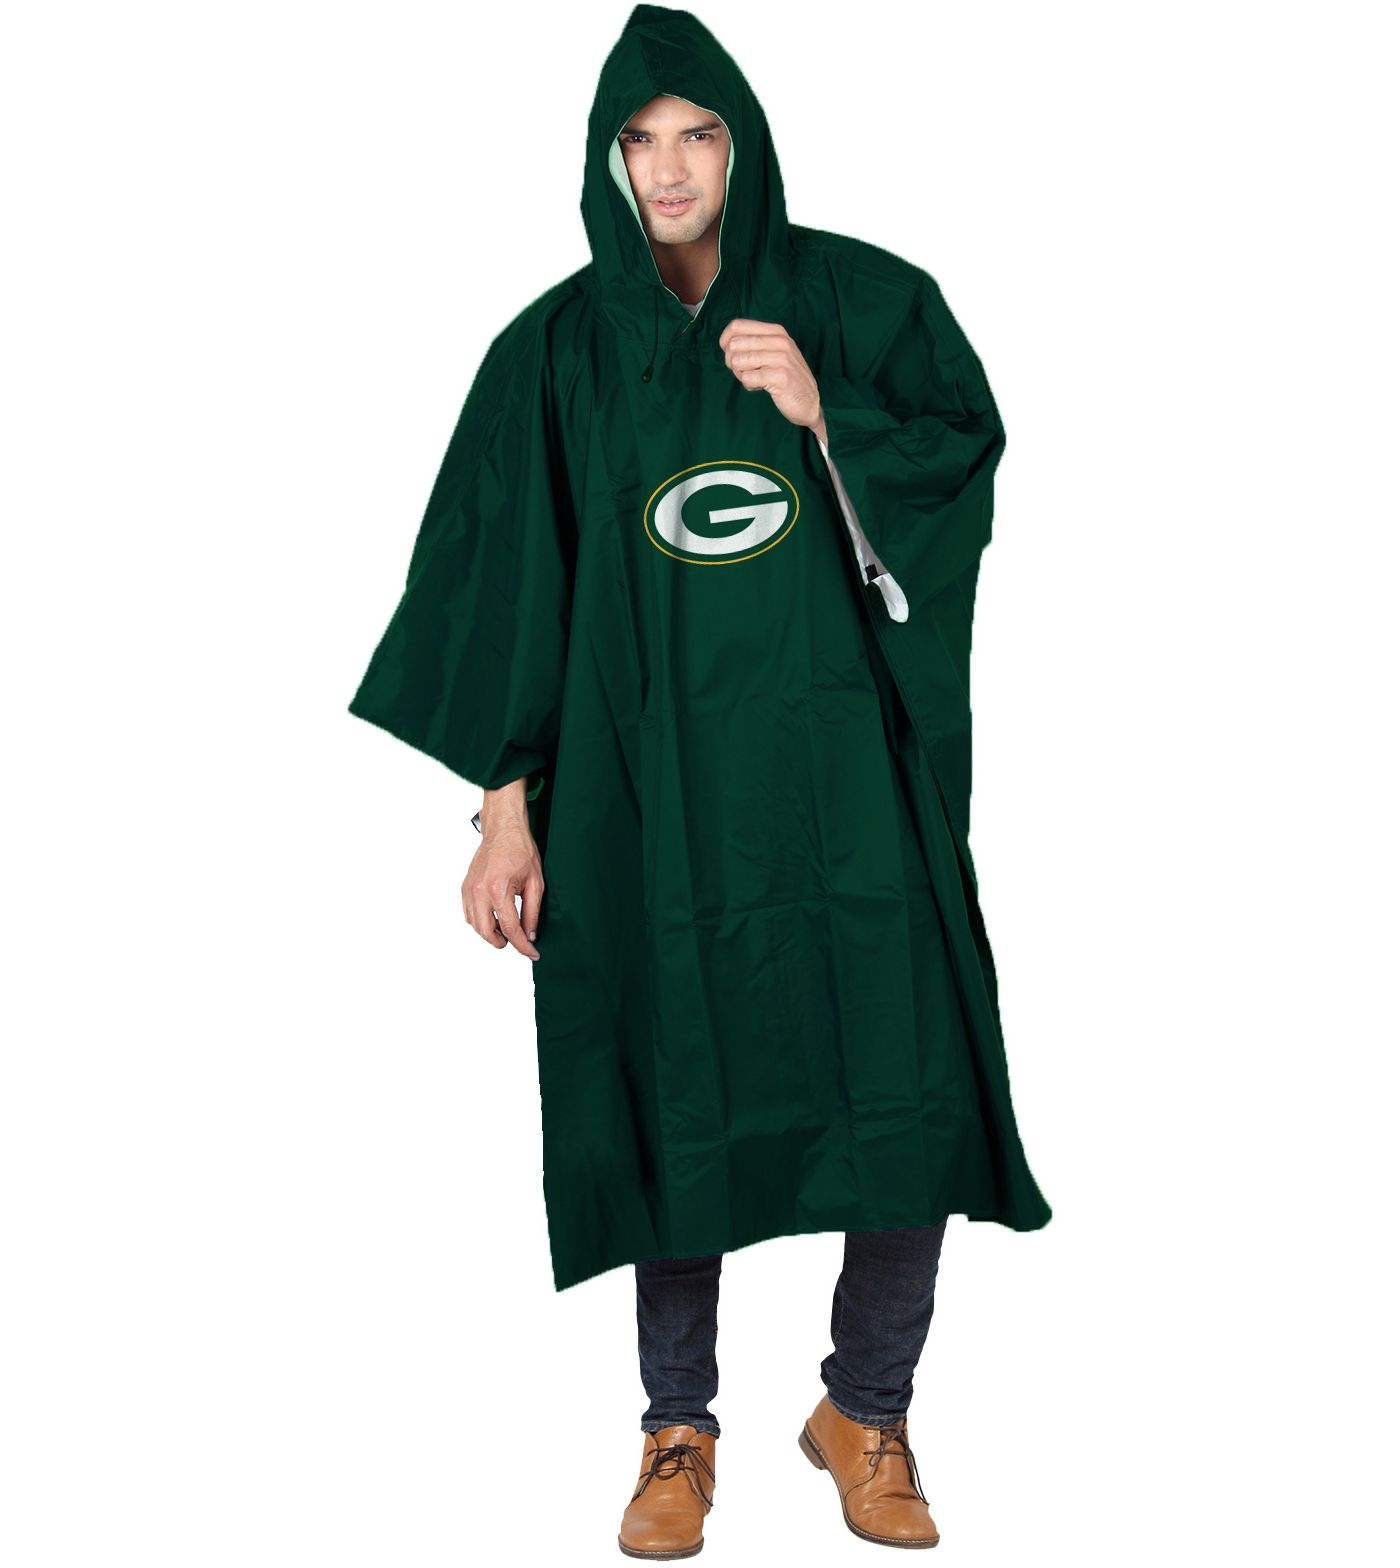 Northwest Green Bay Packers Poncho